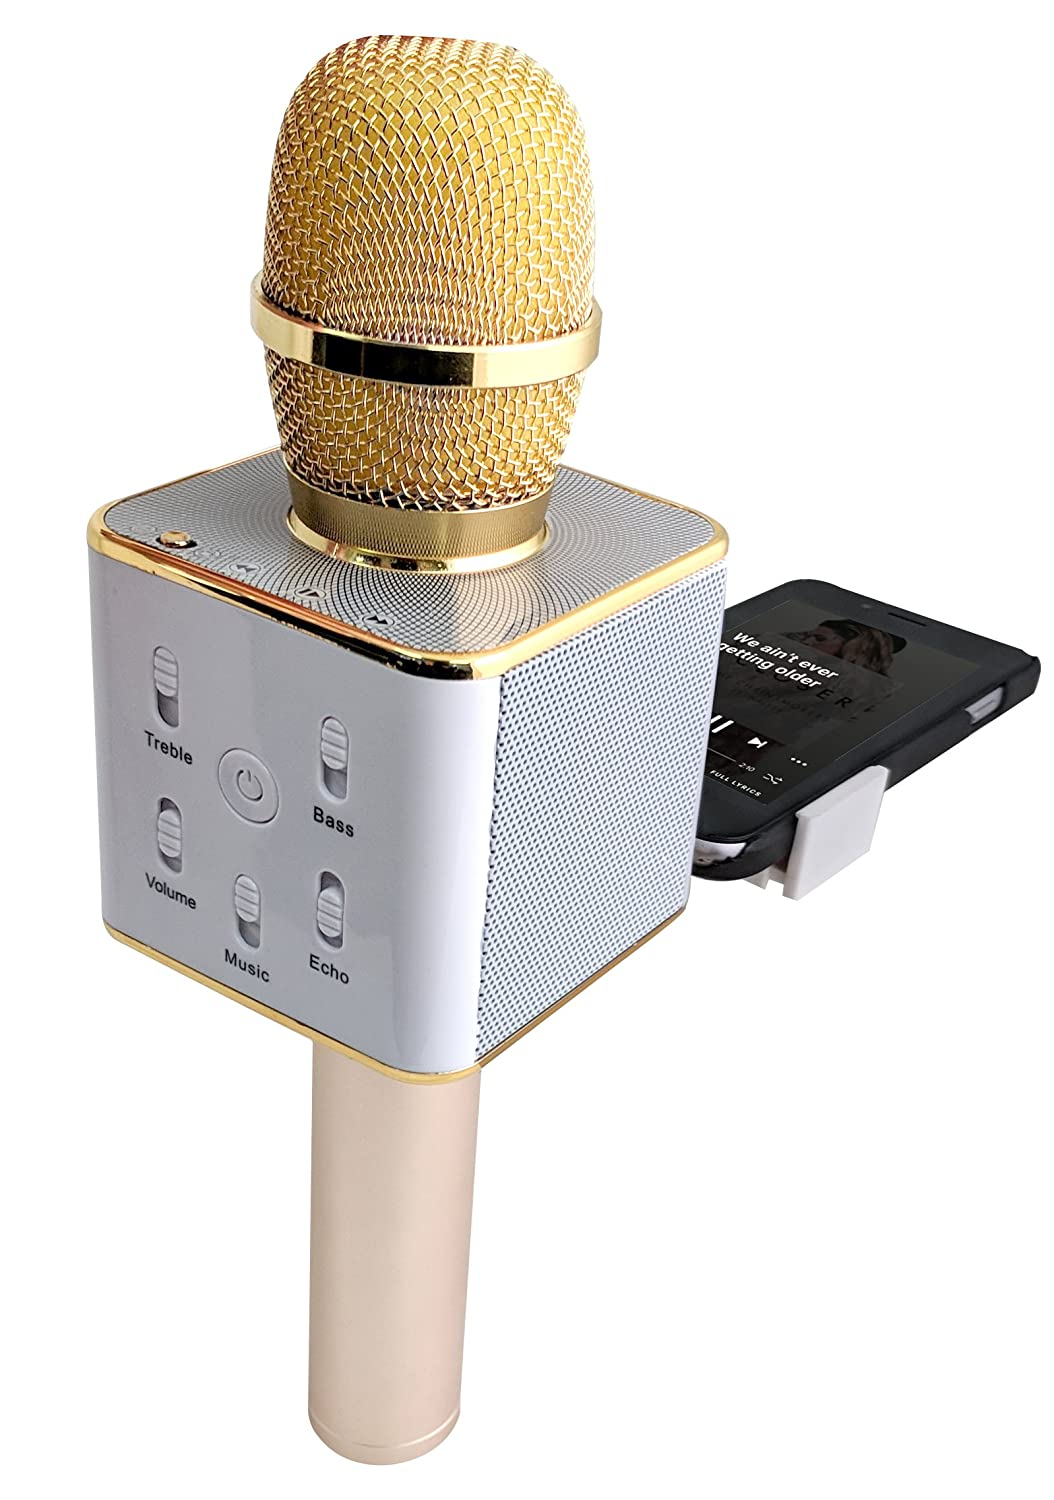 Templeton 3-in-1 Wireless Karaoke Microphone w/ Built-In Bluetooth Speaker, Echo & Effects Functions- Use w/ iPhone, Apple, Android, PC, & Smartphones w/ Free Cell Phone Lyrics Holder 4332801074